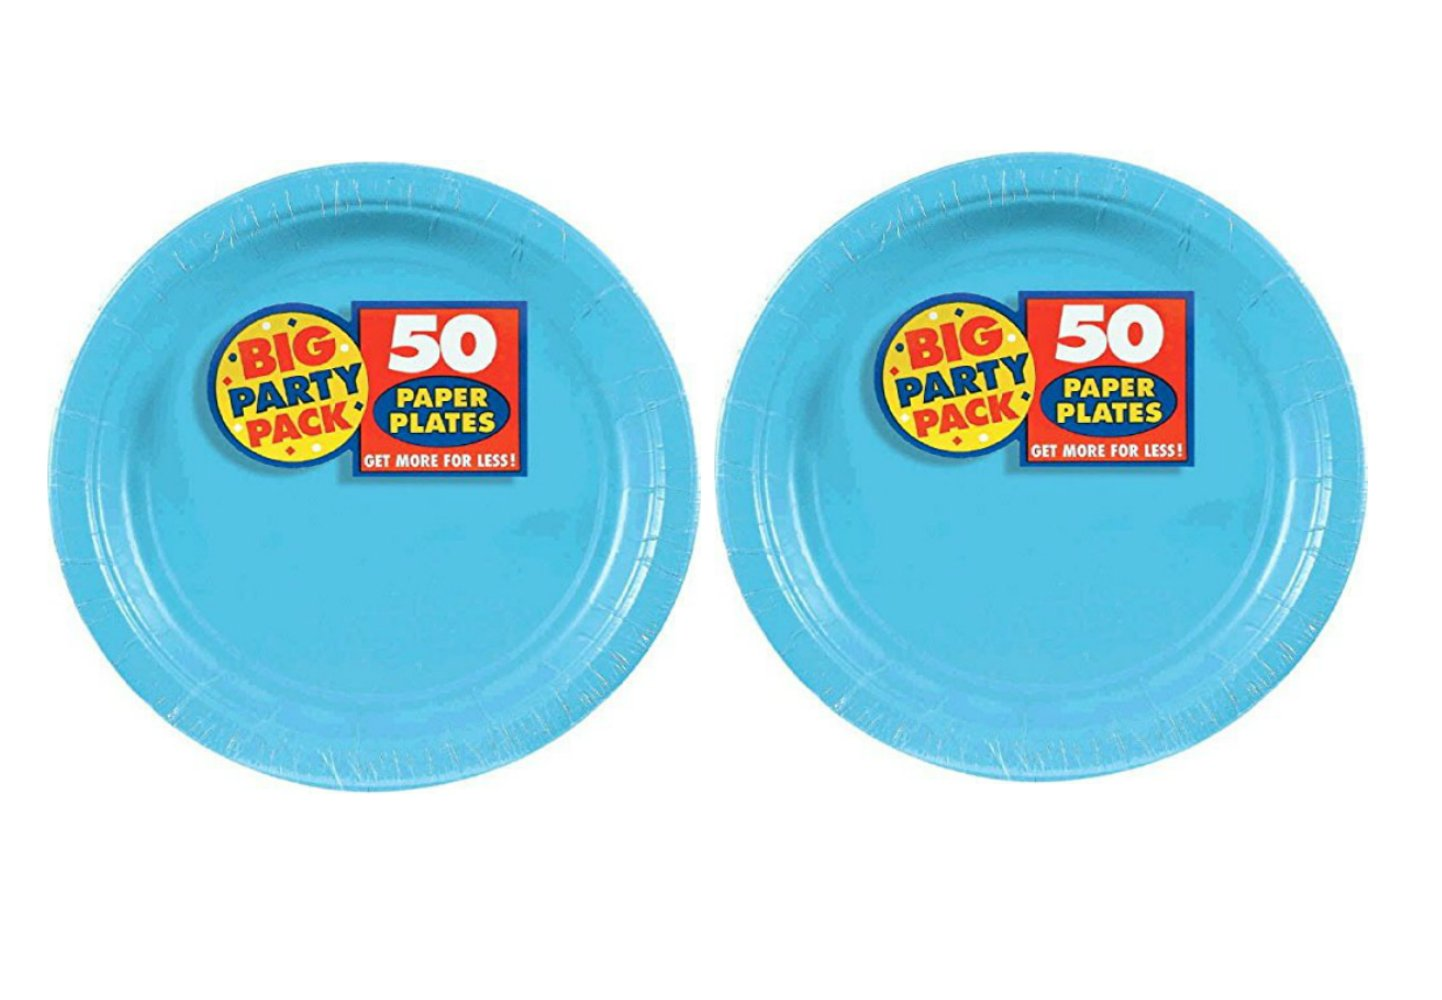 Amscan Big Party Pack 50 Count Paper Dessert Plates Value 2-Pack (100 count total), 7-Inch, Caribbean